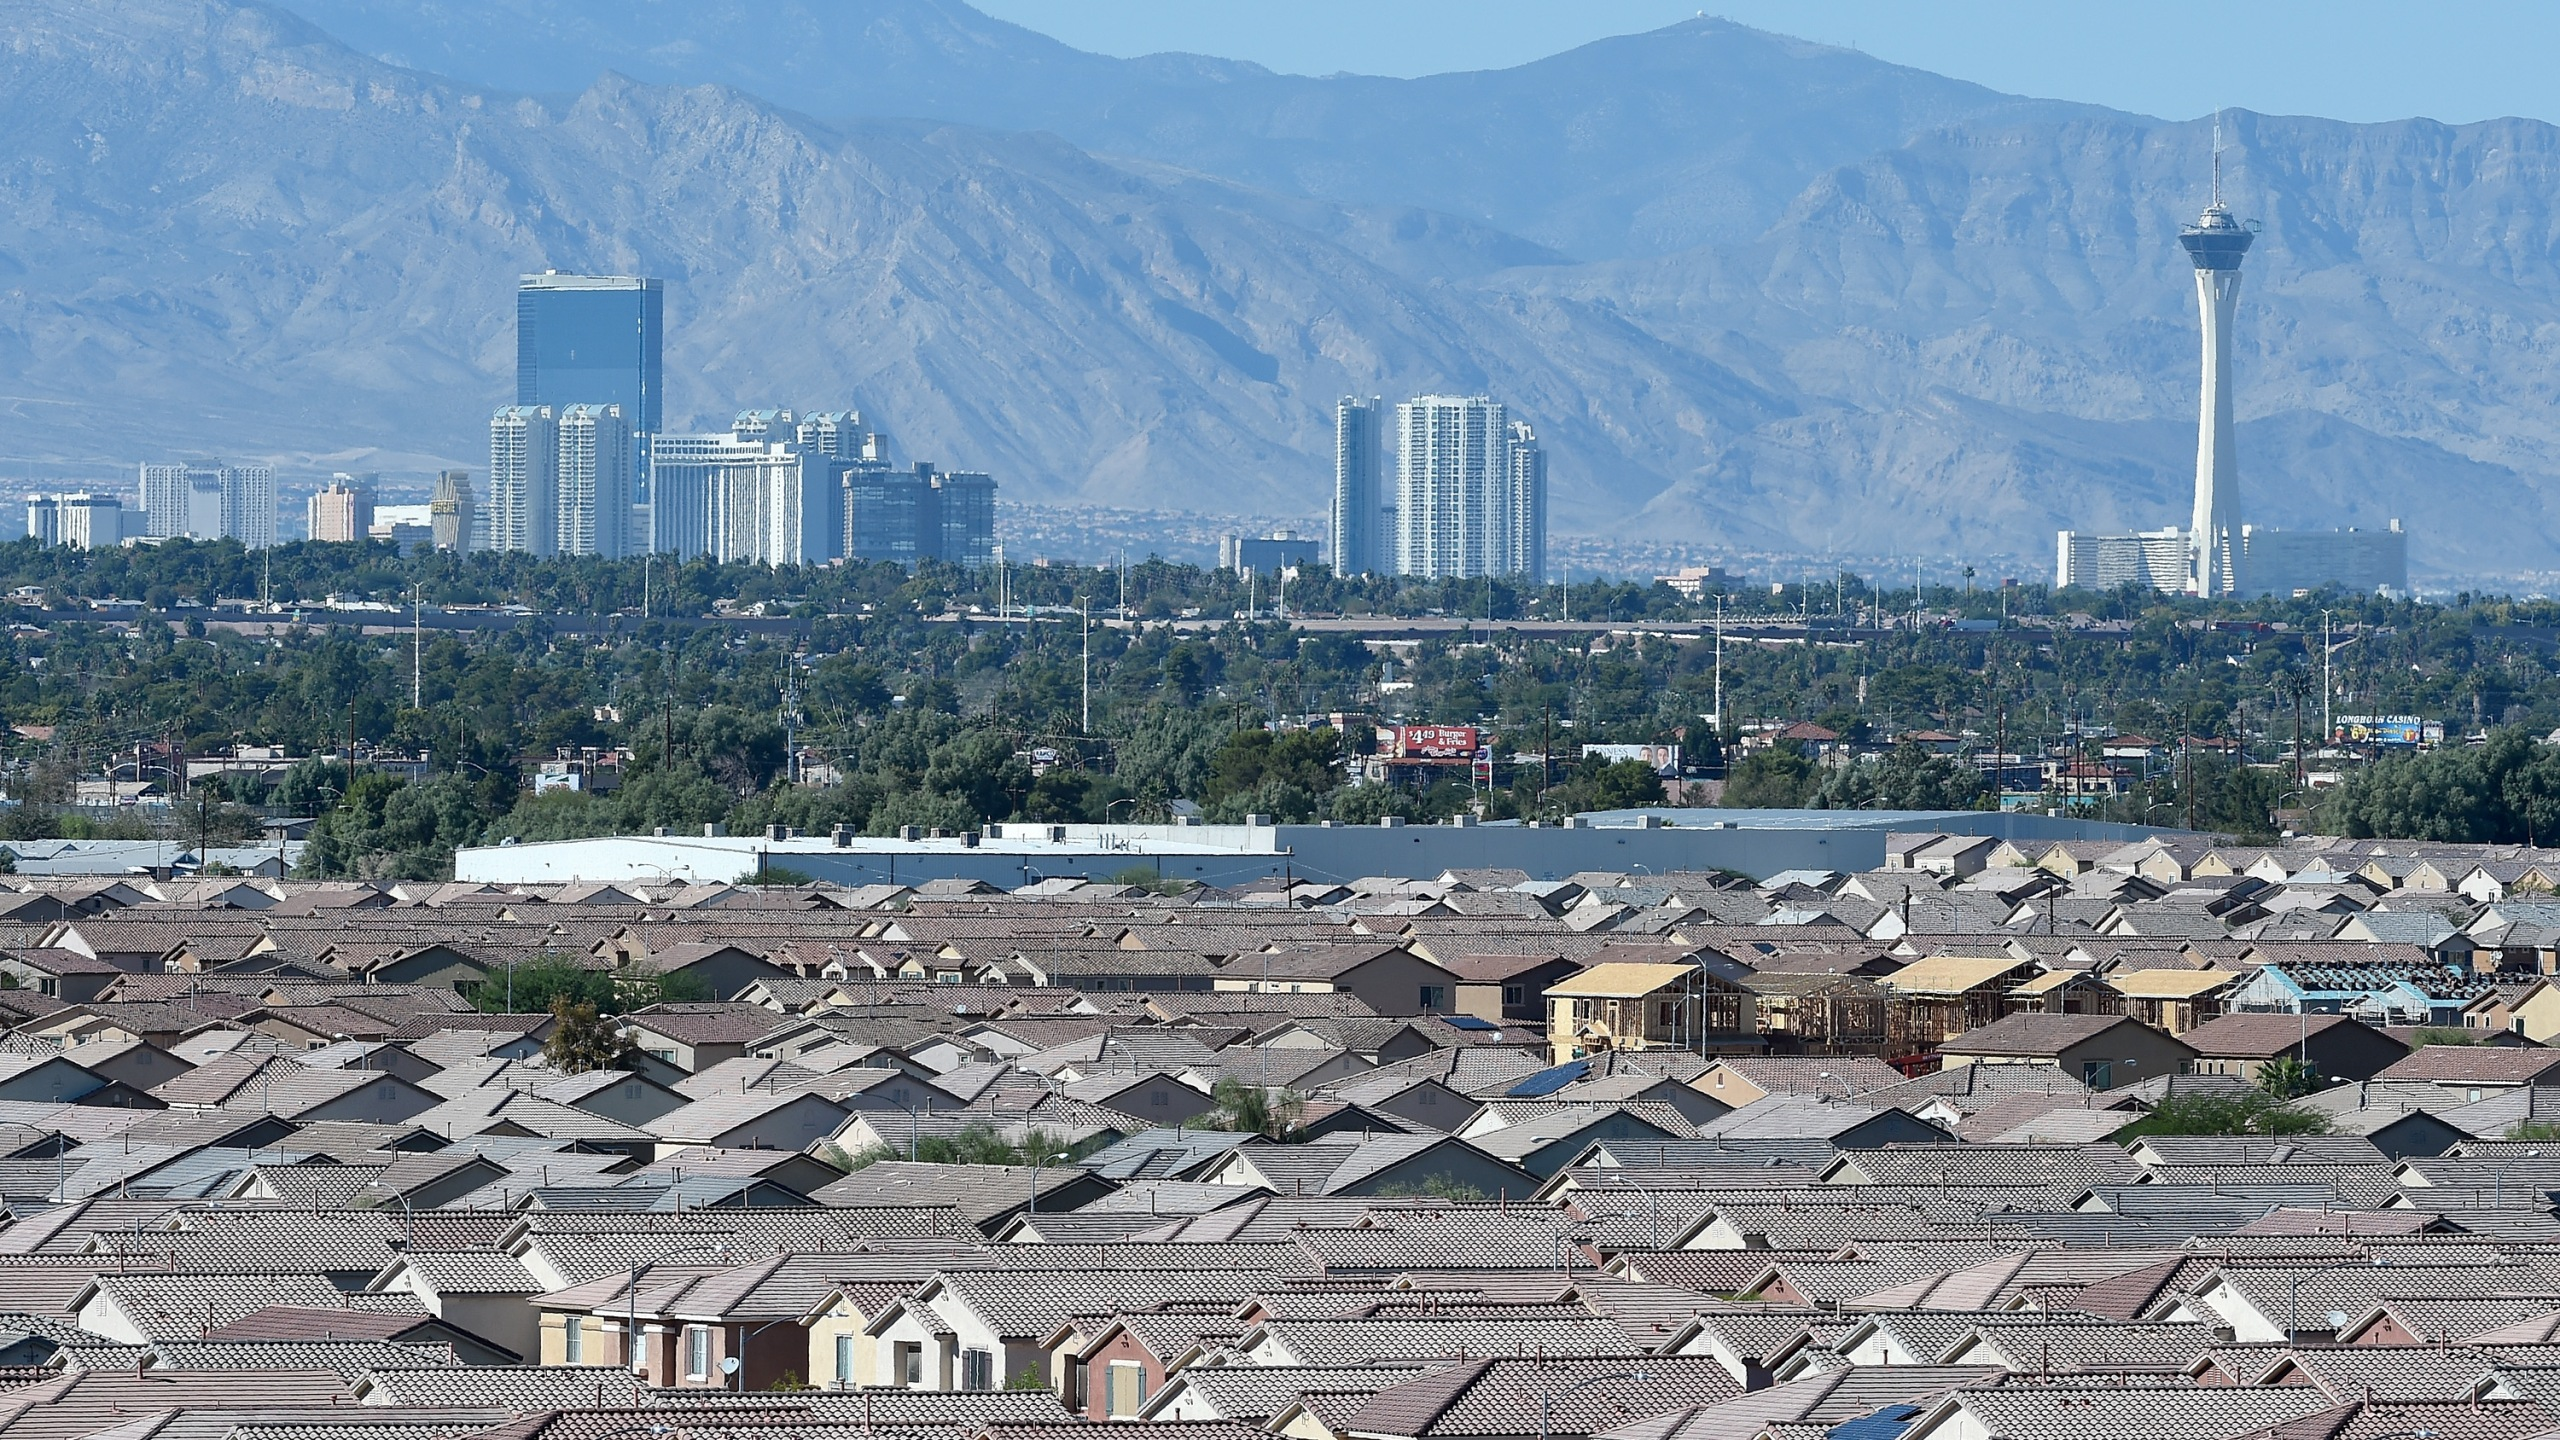 A general view from Sam Boyd Stadium shows the Las Vegas Strip behind homes on Oct. 31, 2015 in Las Vegas, Nevada (Credit: Ethan Miller/Getty Images)